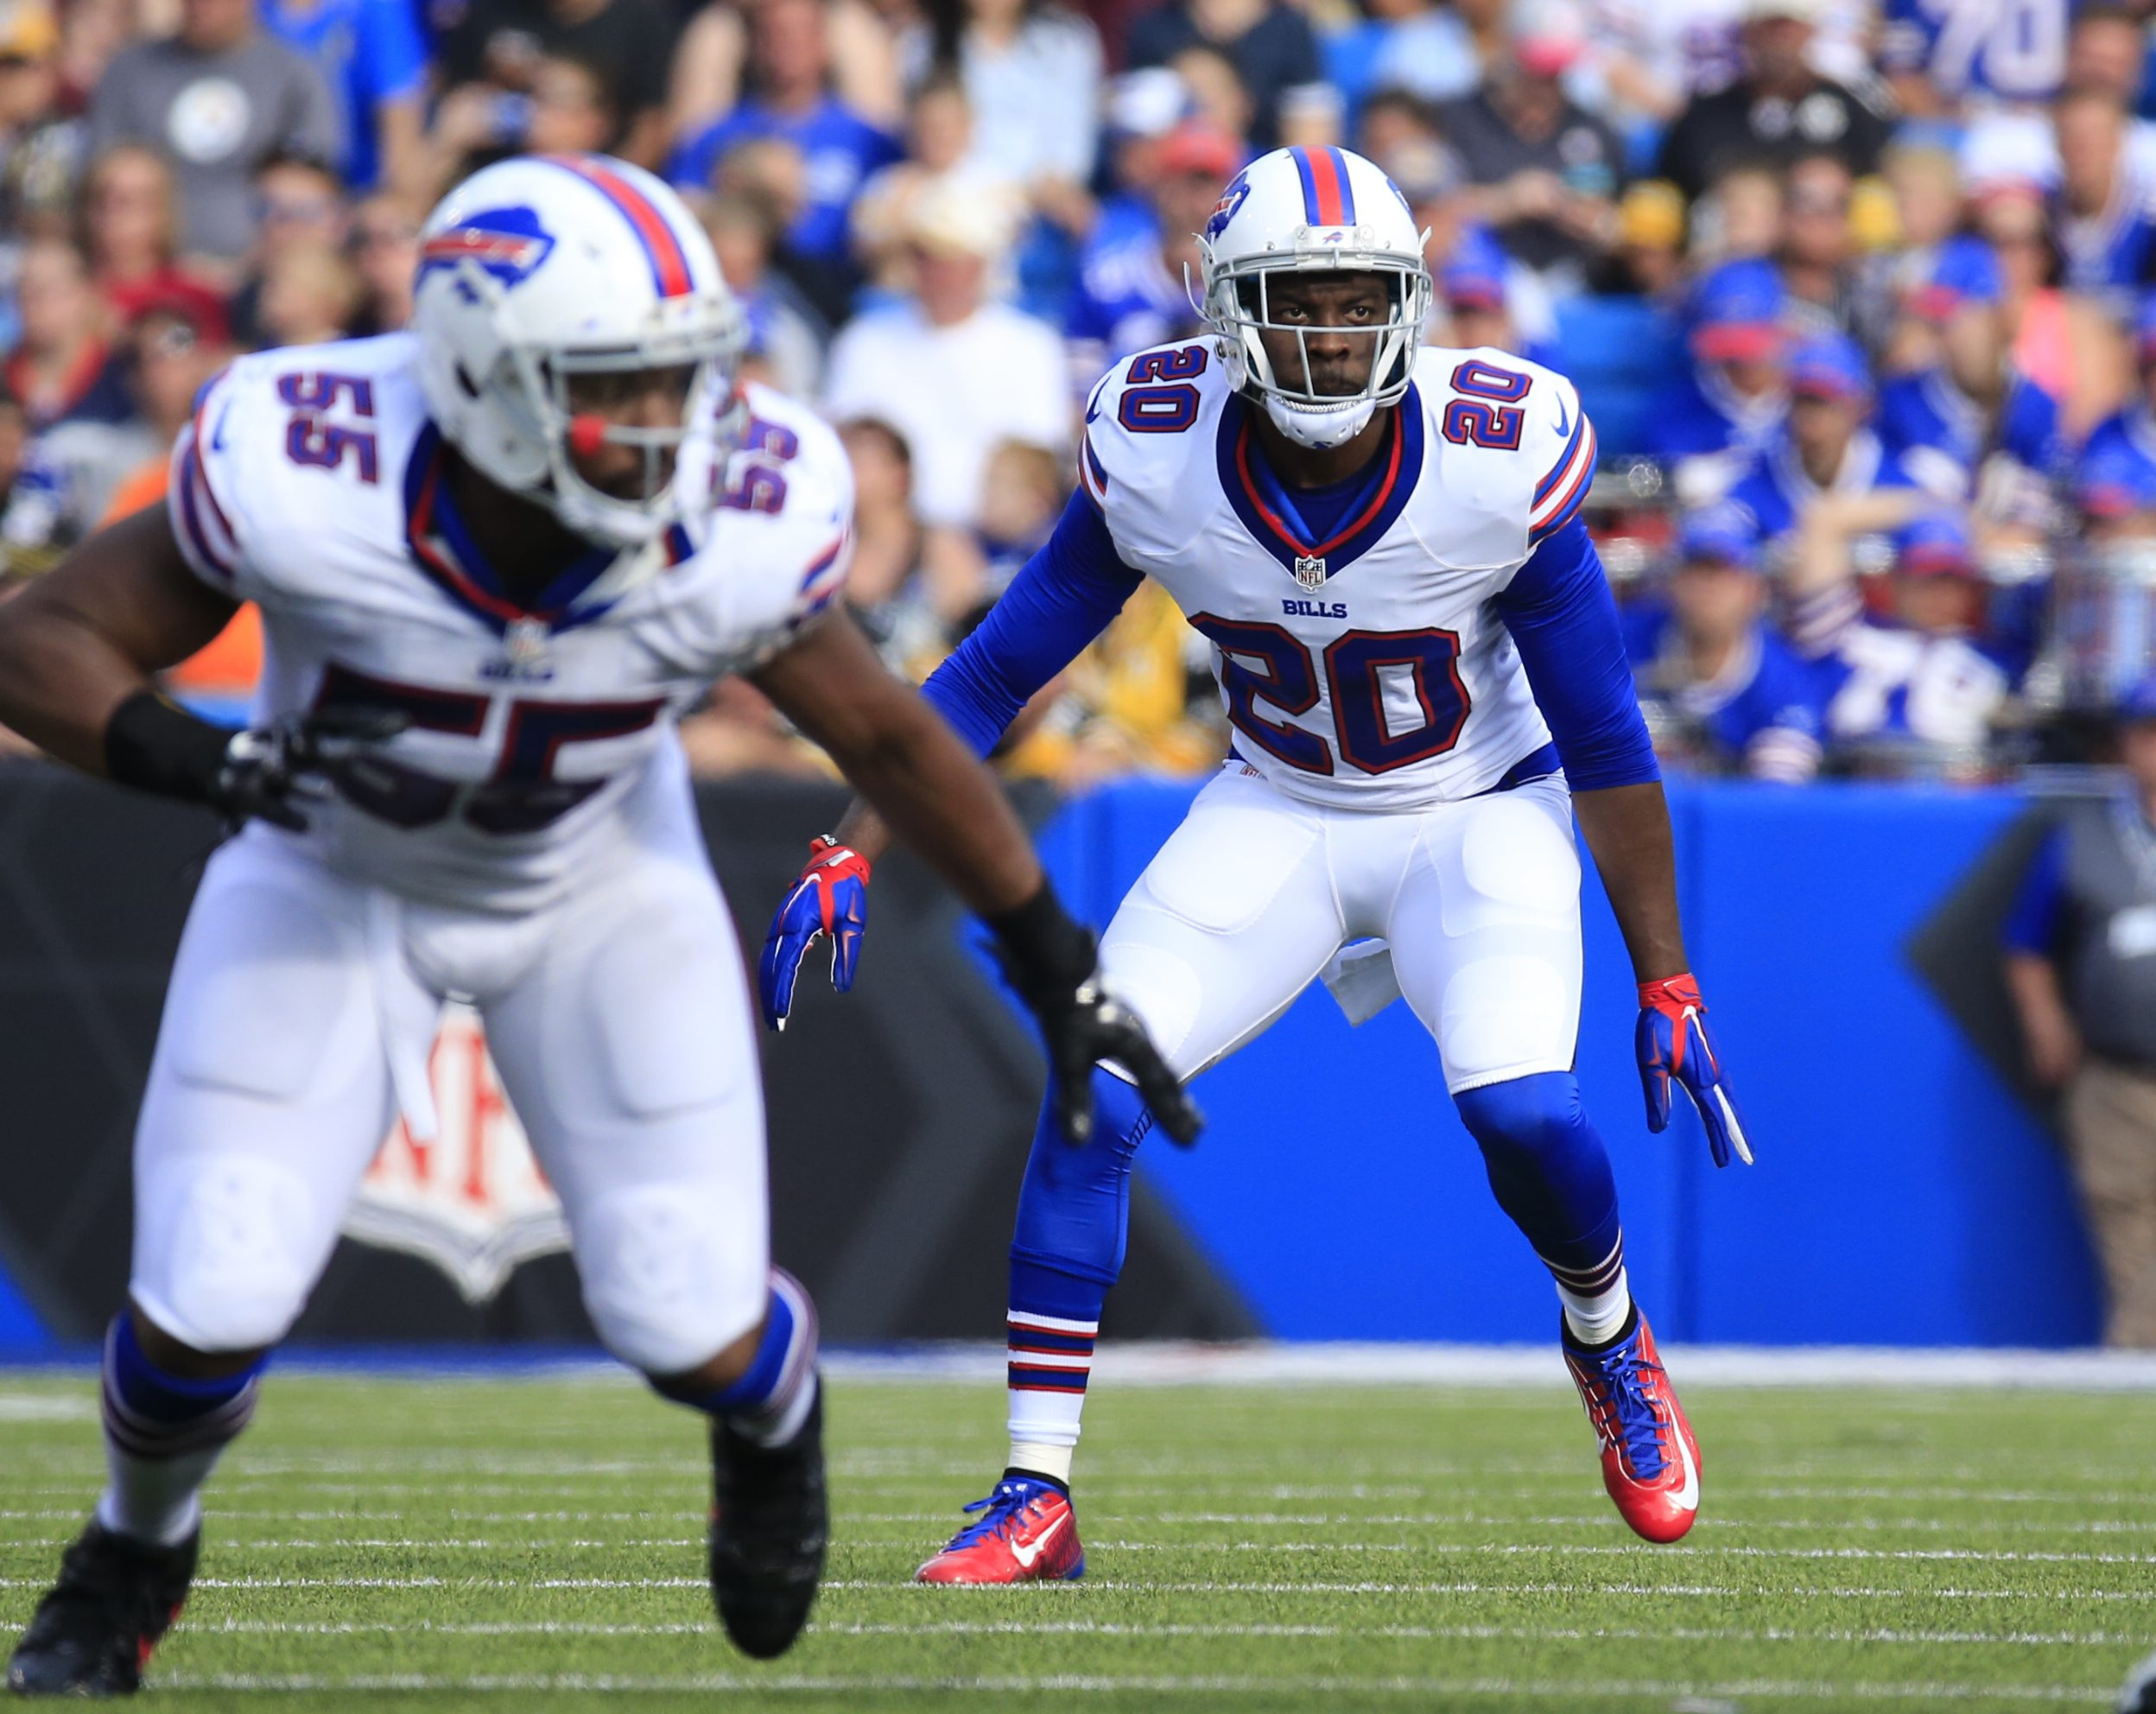 Buffalo's Corey Graham has a problem with Rex Ryan's summation of the defensive backfield's play during Sunday's loss to Washington. (Harry Scull Jr./Buffalo News)